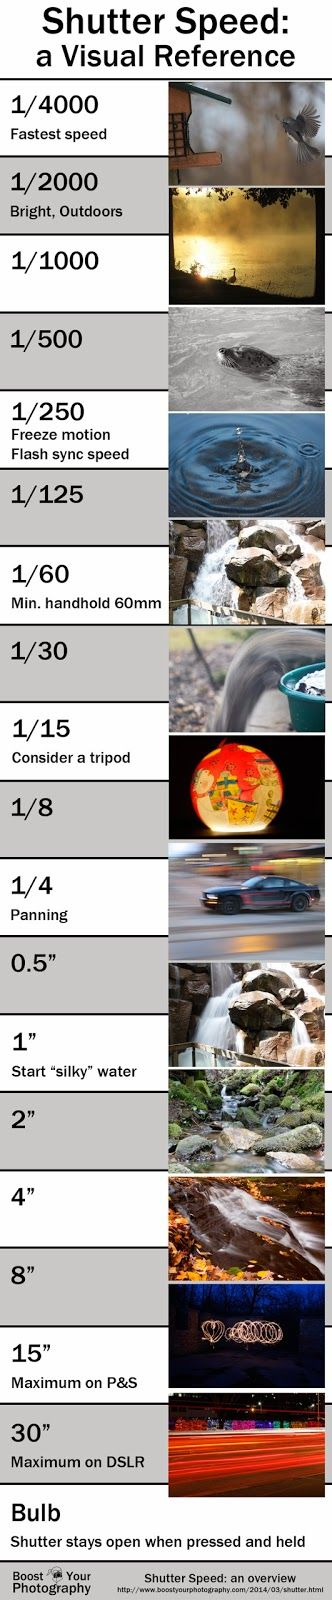 This post provides an illustrated overview of shutter speed and recommendations about which speeds to use in which situations.